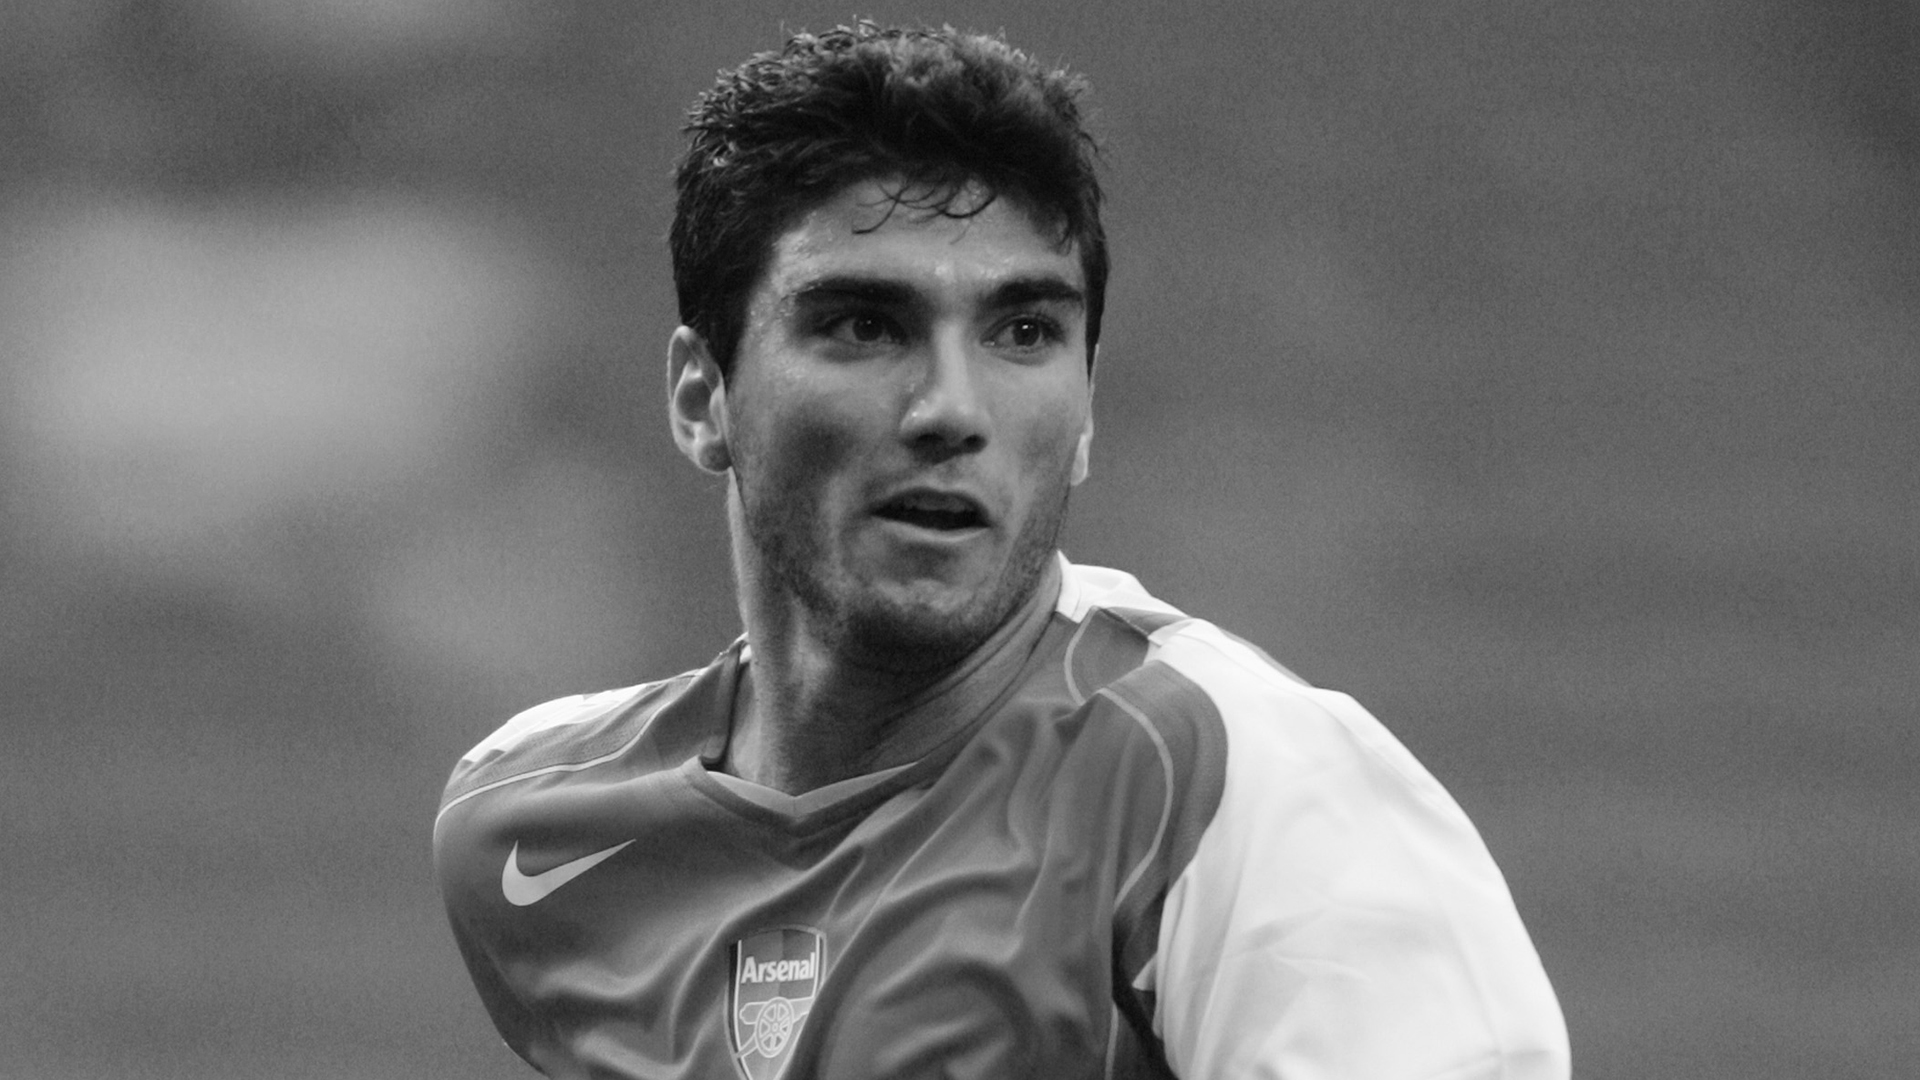 Former Arsenal player Jose Antonio Reyes killed in vehicle  accident